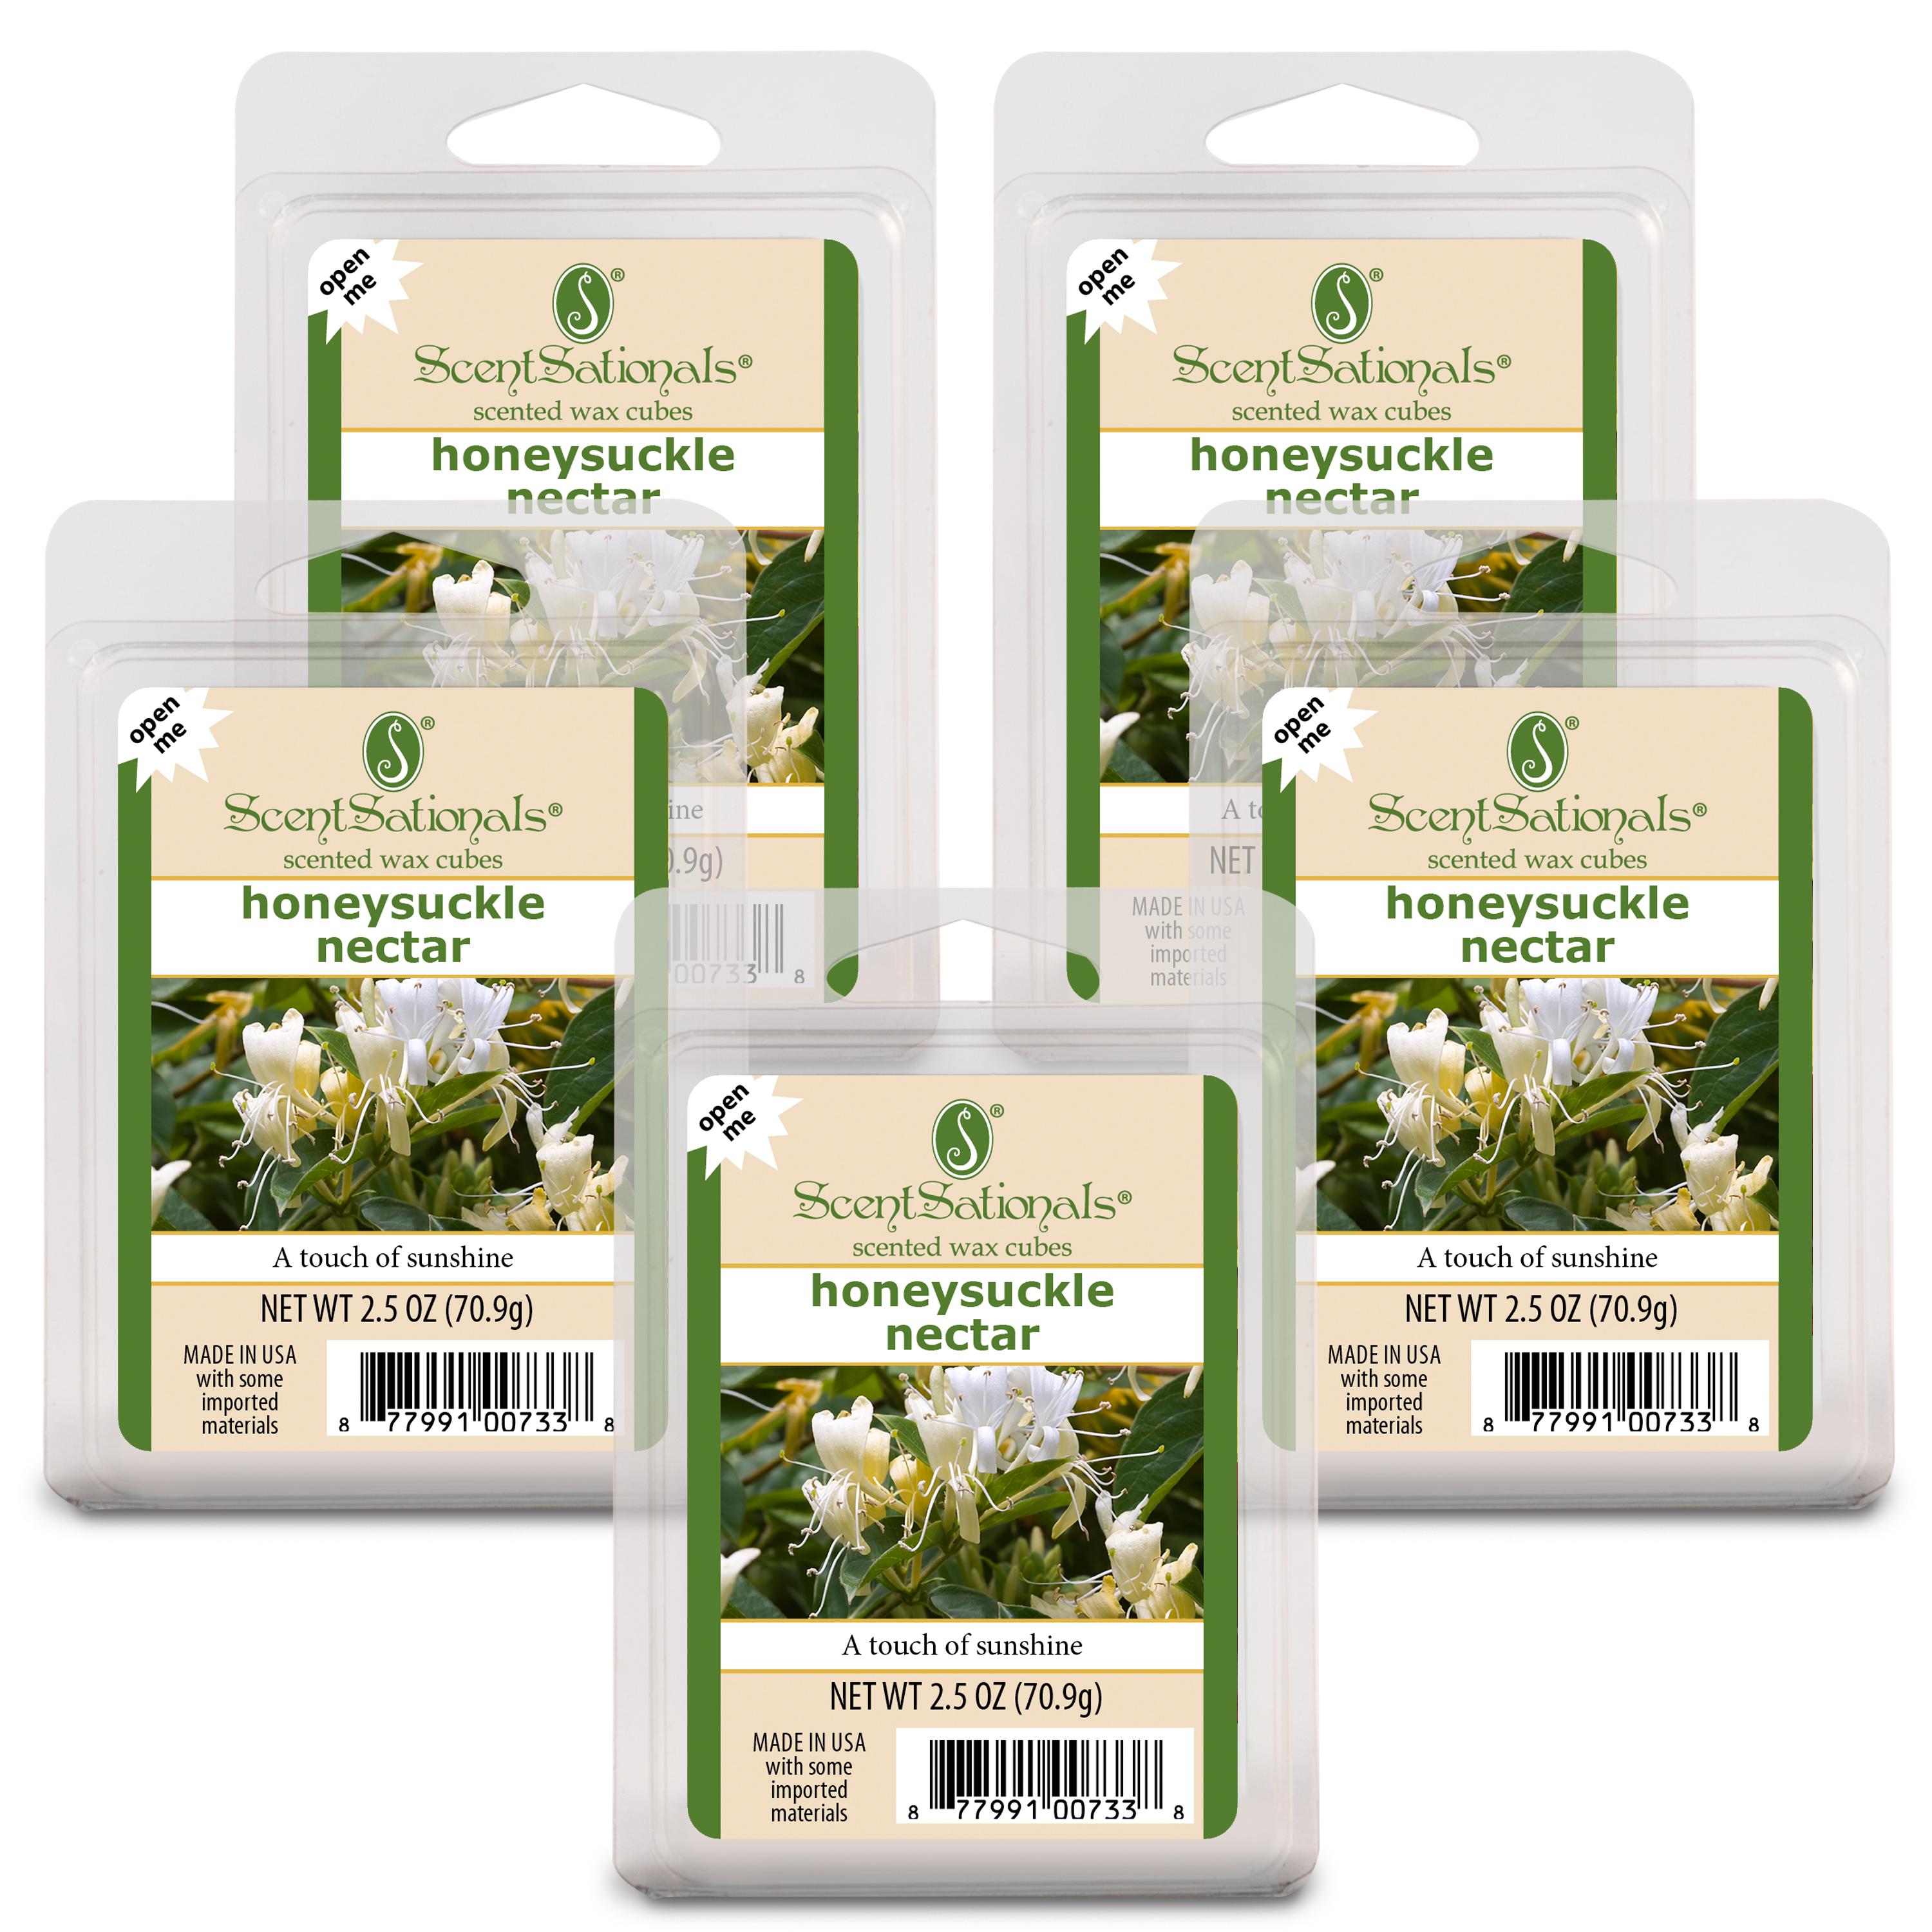 ScentSationals 2.5 oz Honeysuckle Nectar Scented Wax Melts, 5-Pack